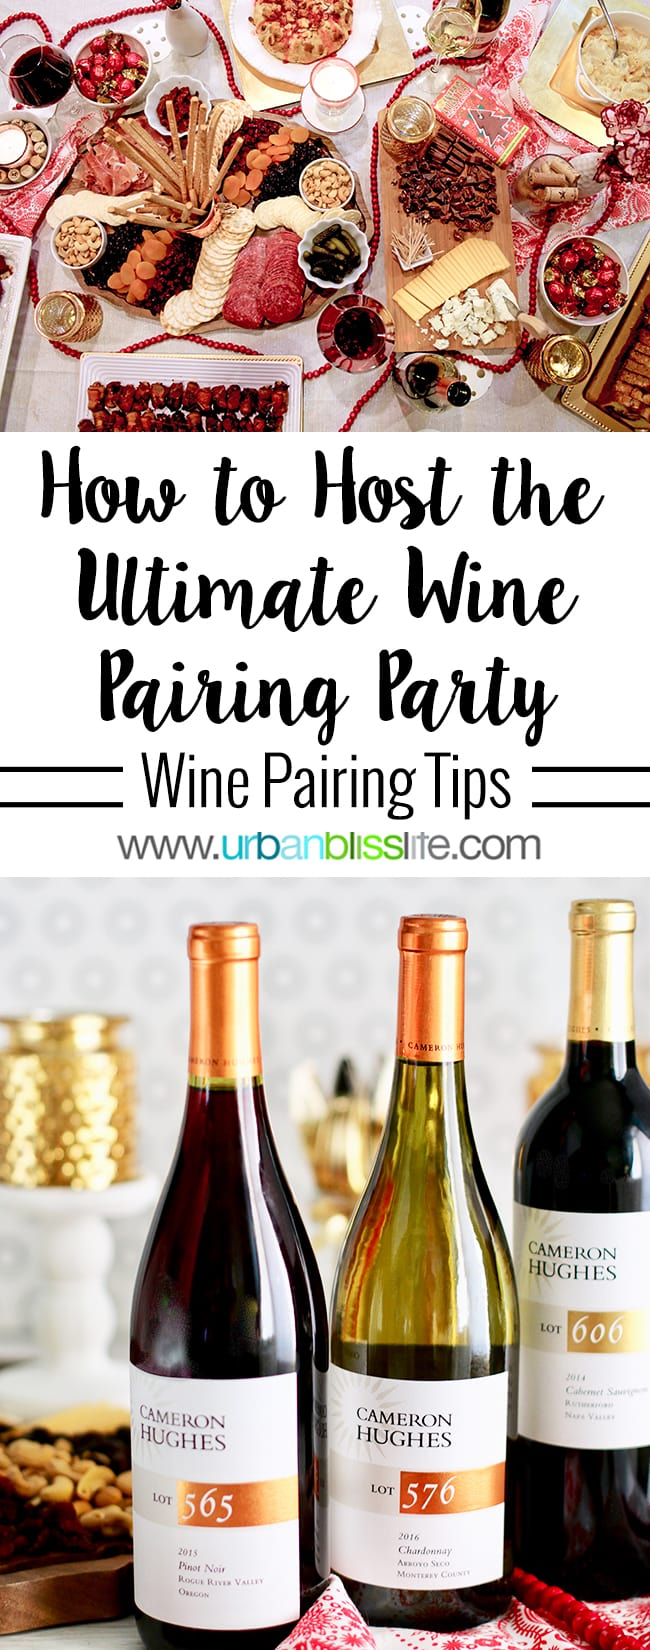 How to Host the Ultimate Holiday Wine Pairing Party